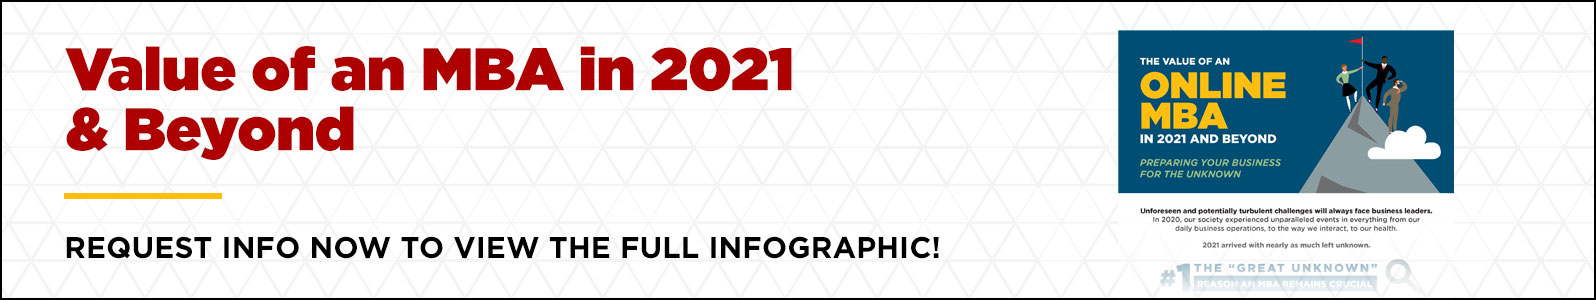 Click here to review the UofL online MBA infographic and discover the benefits of earning your MBA in 2021 and beyond